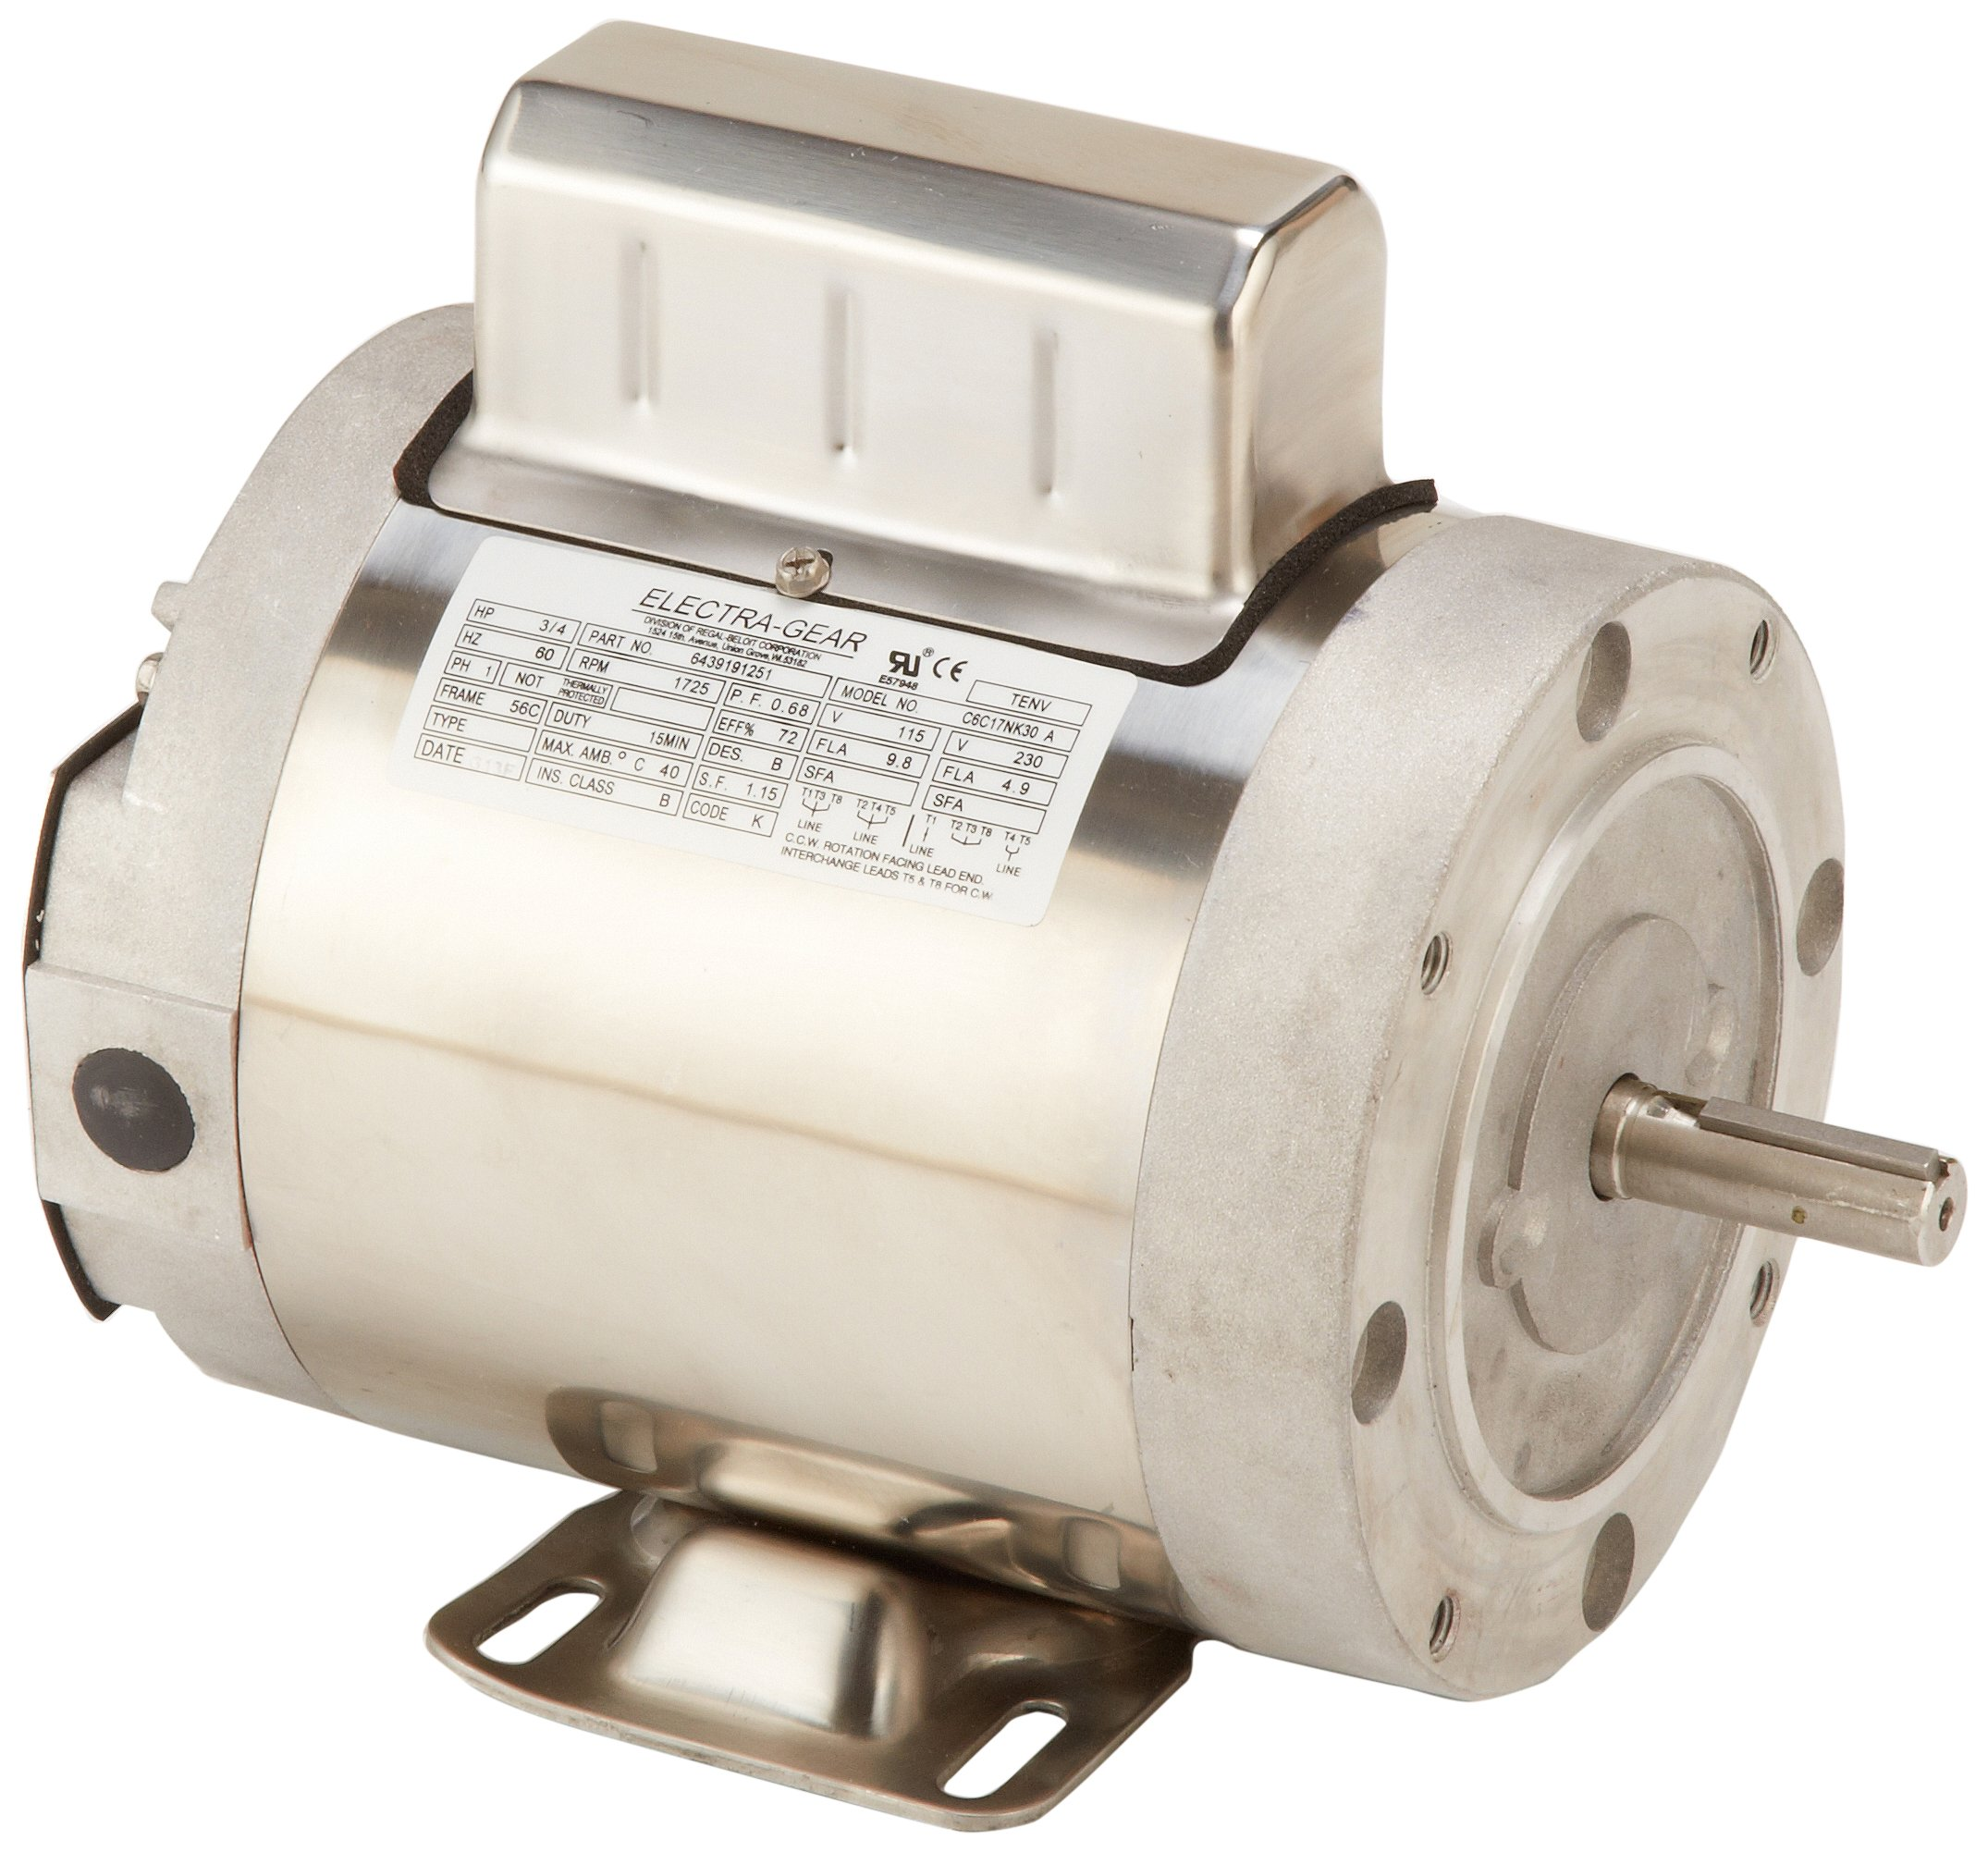 Leeson 6439191251 Boat Hoist Motor, 1 Phase, 56C Frame, Rigid C Mounting, 3/4HP, 1800 RPM, 115/208-230V Voltage, 60Hz Fequency